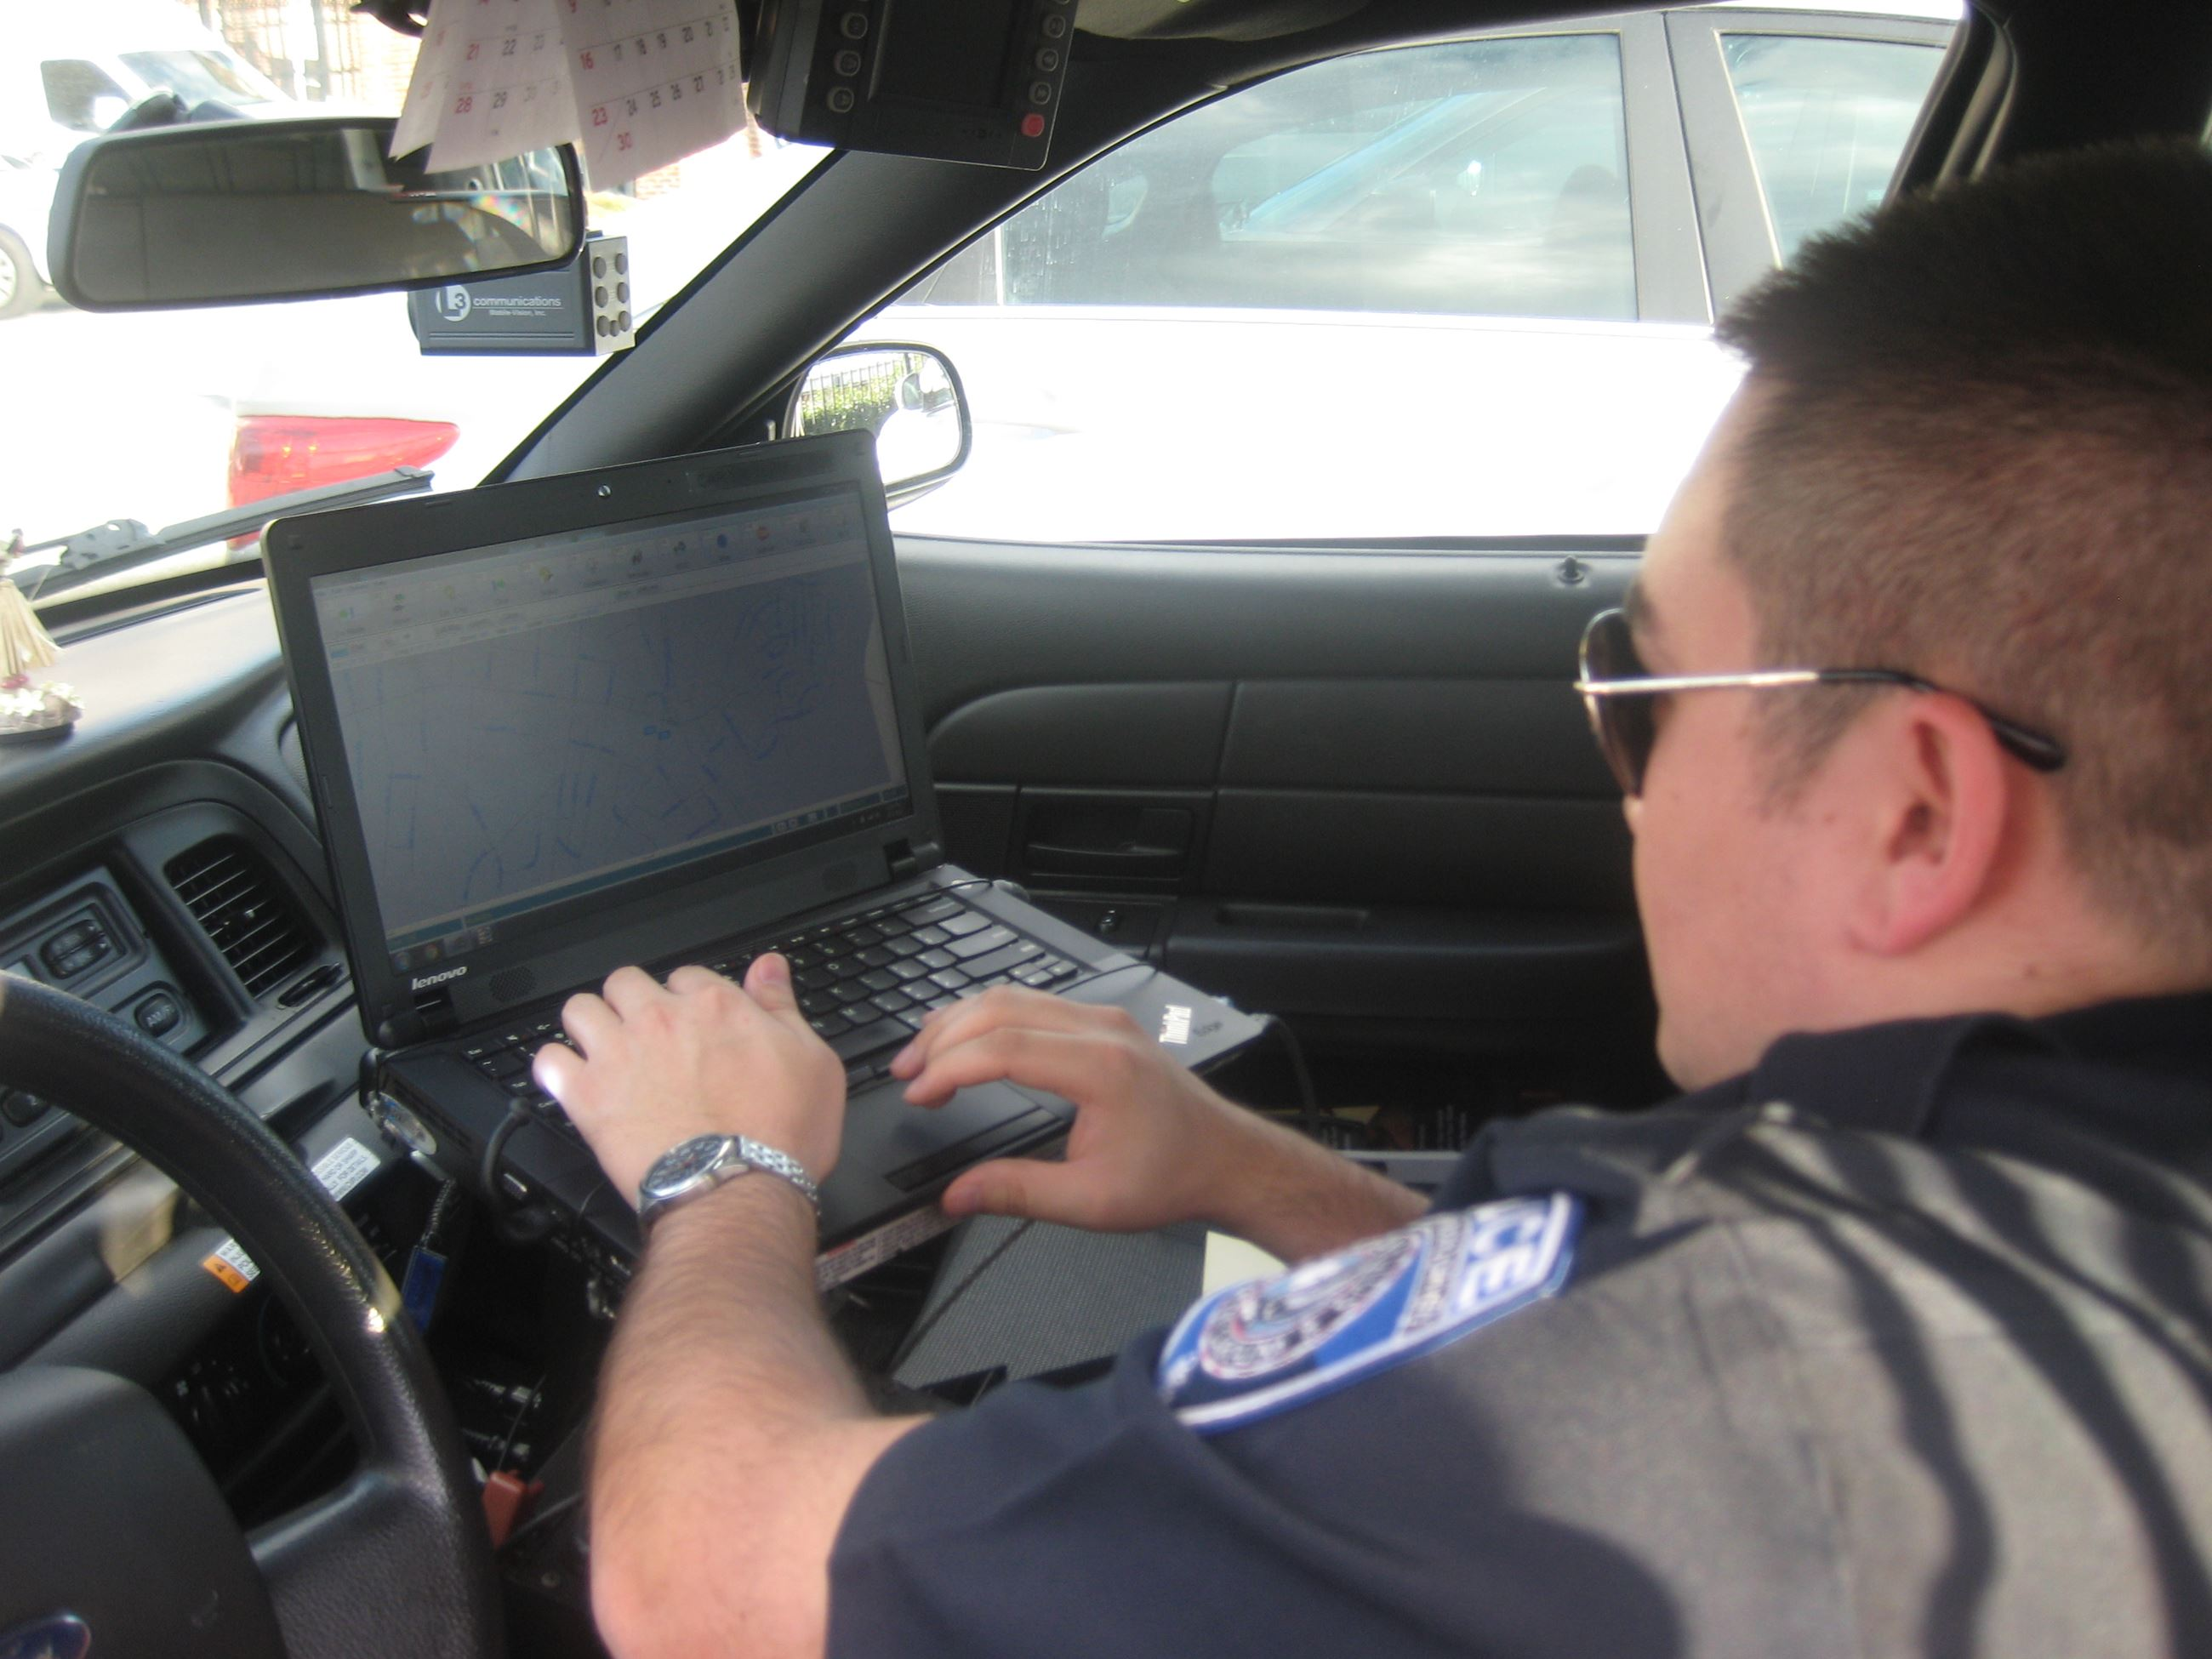 Officer on laptop